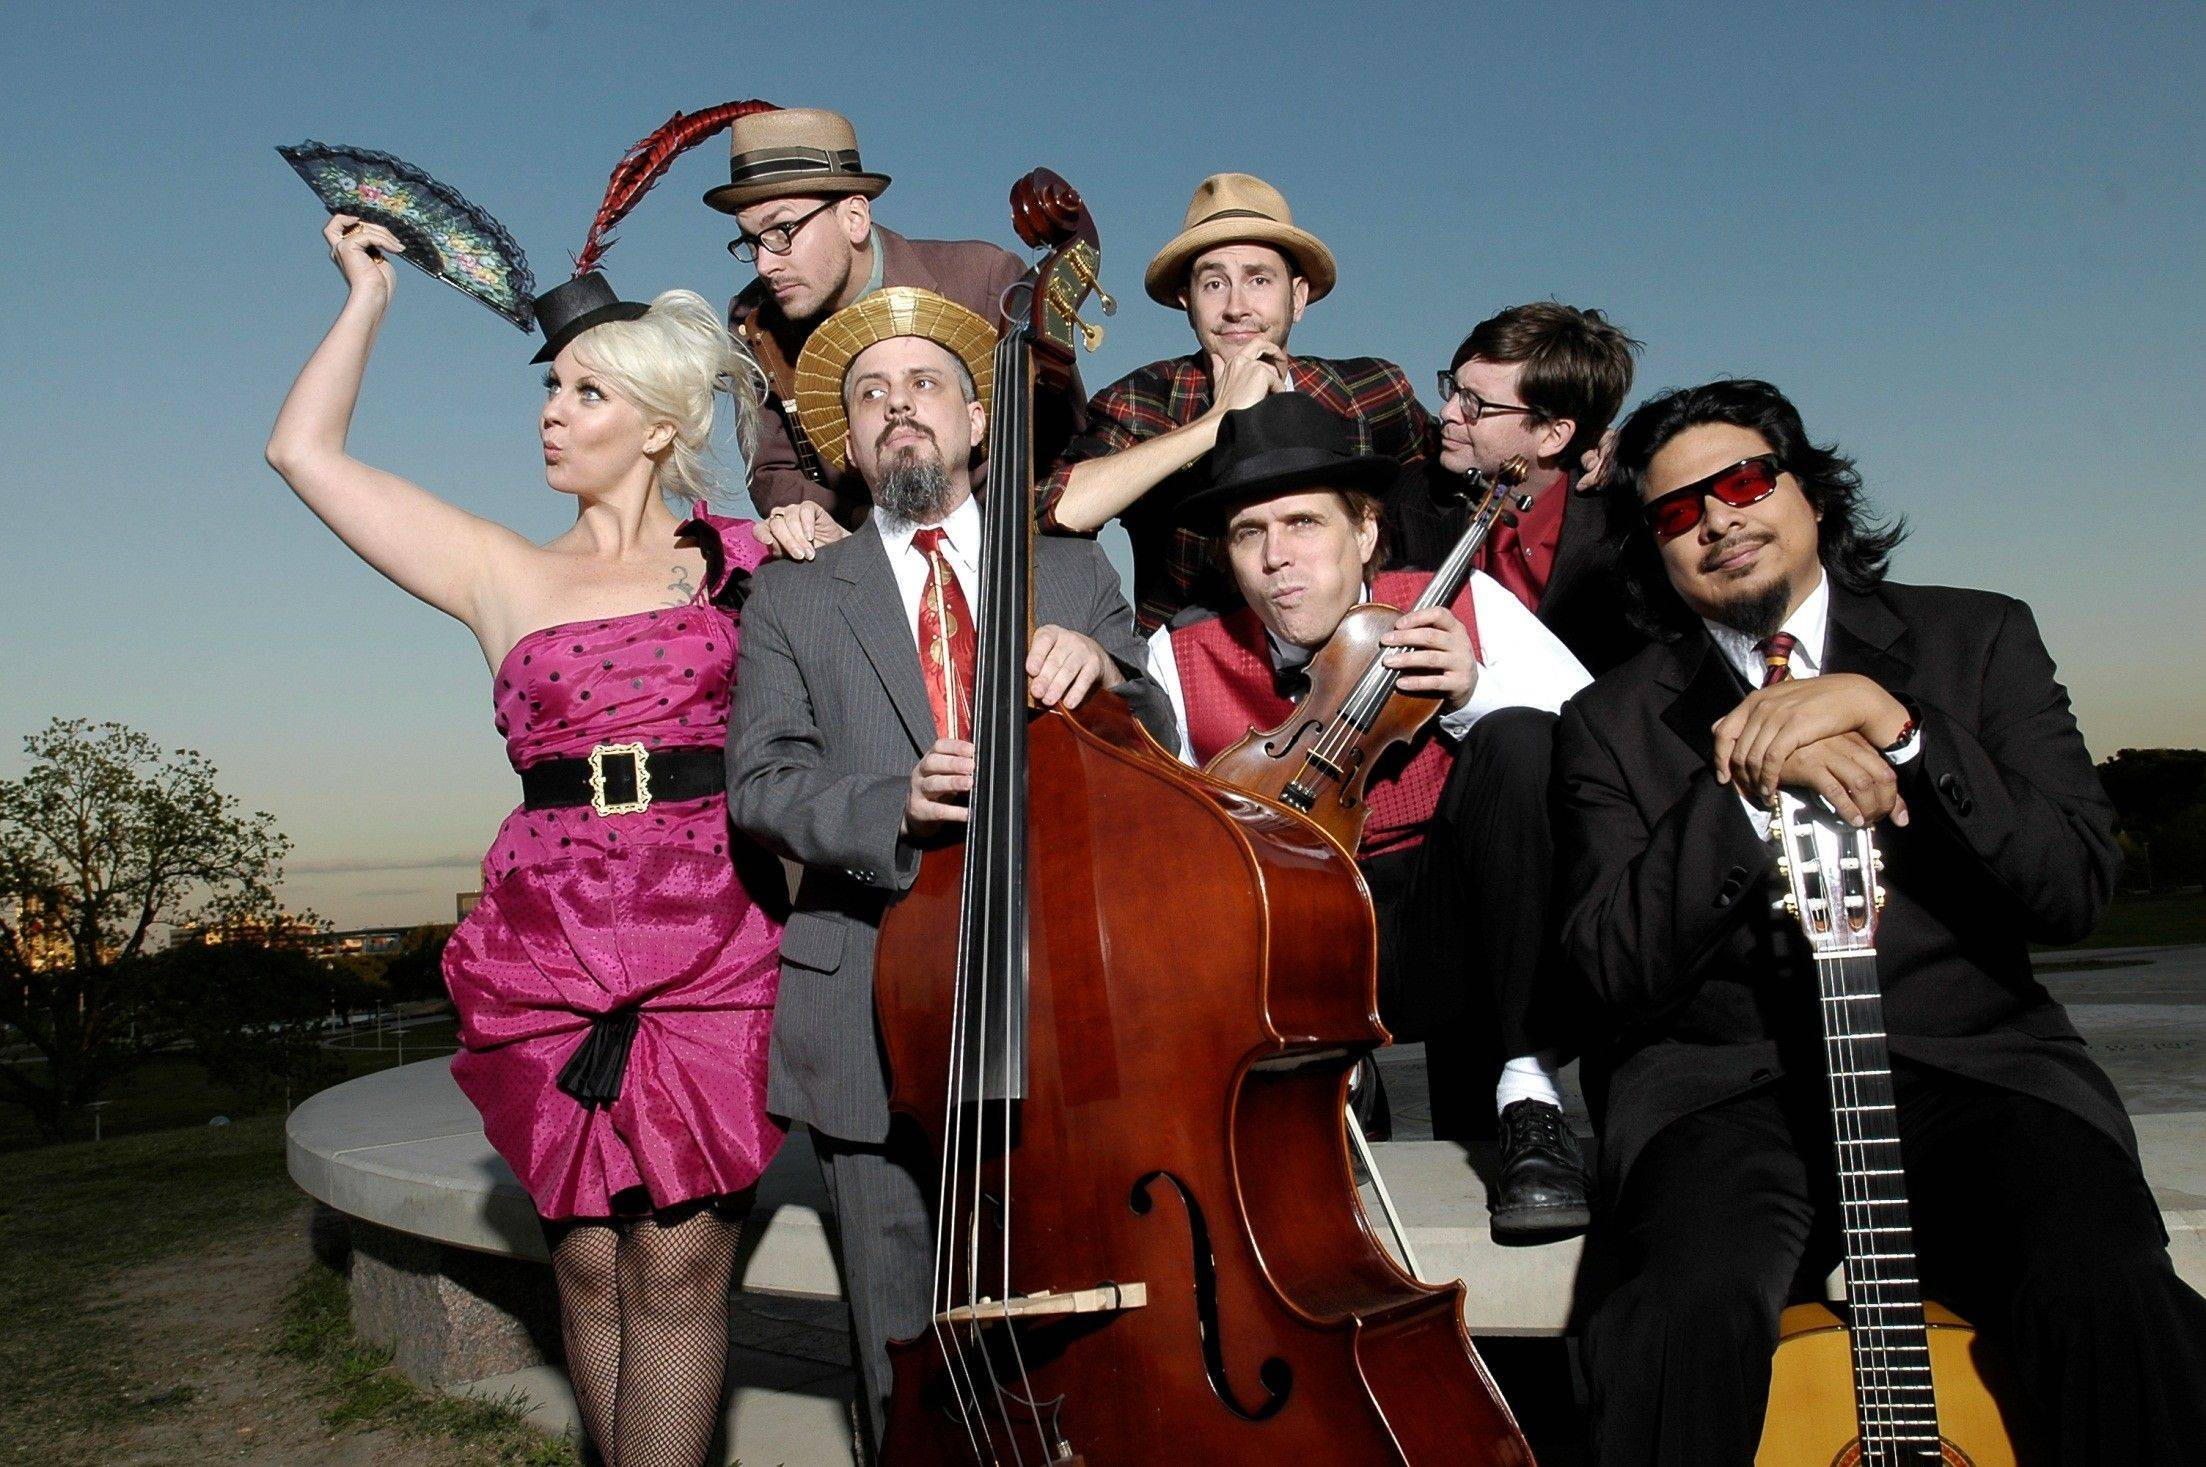 The White Ghost Shivers, an Austin, Texas band featuring string-band music of the 1920s and '30s, will recreate a 1920s nightclub atmosphere at Elgin Community College on Feb. 4-5.